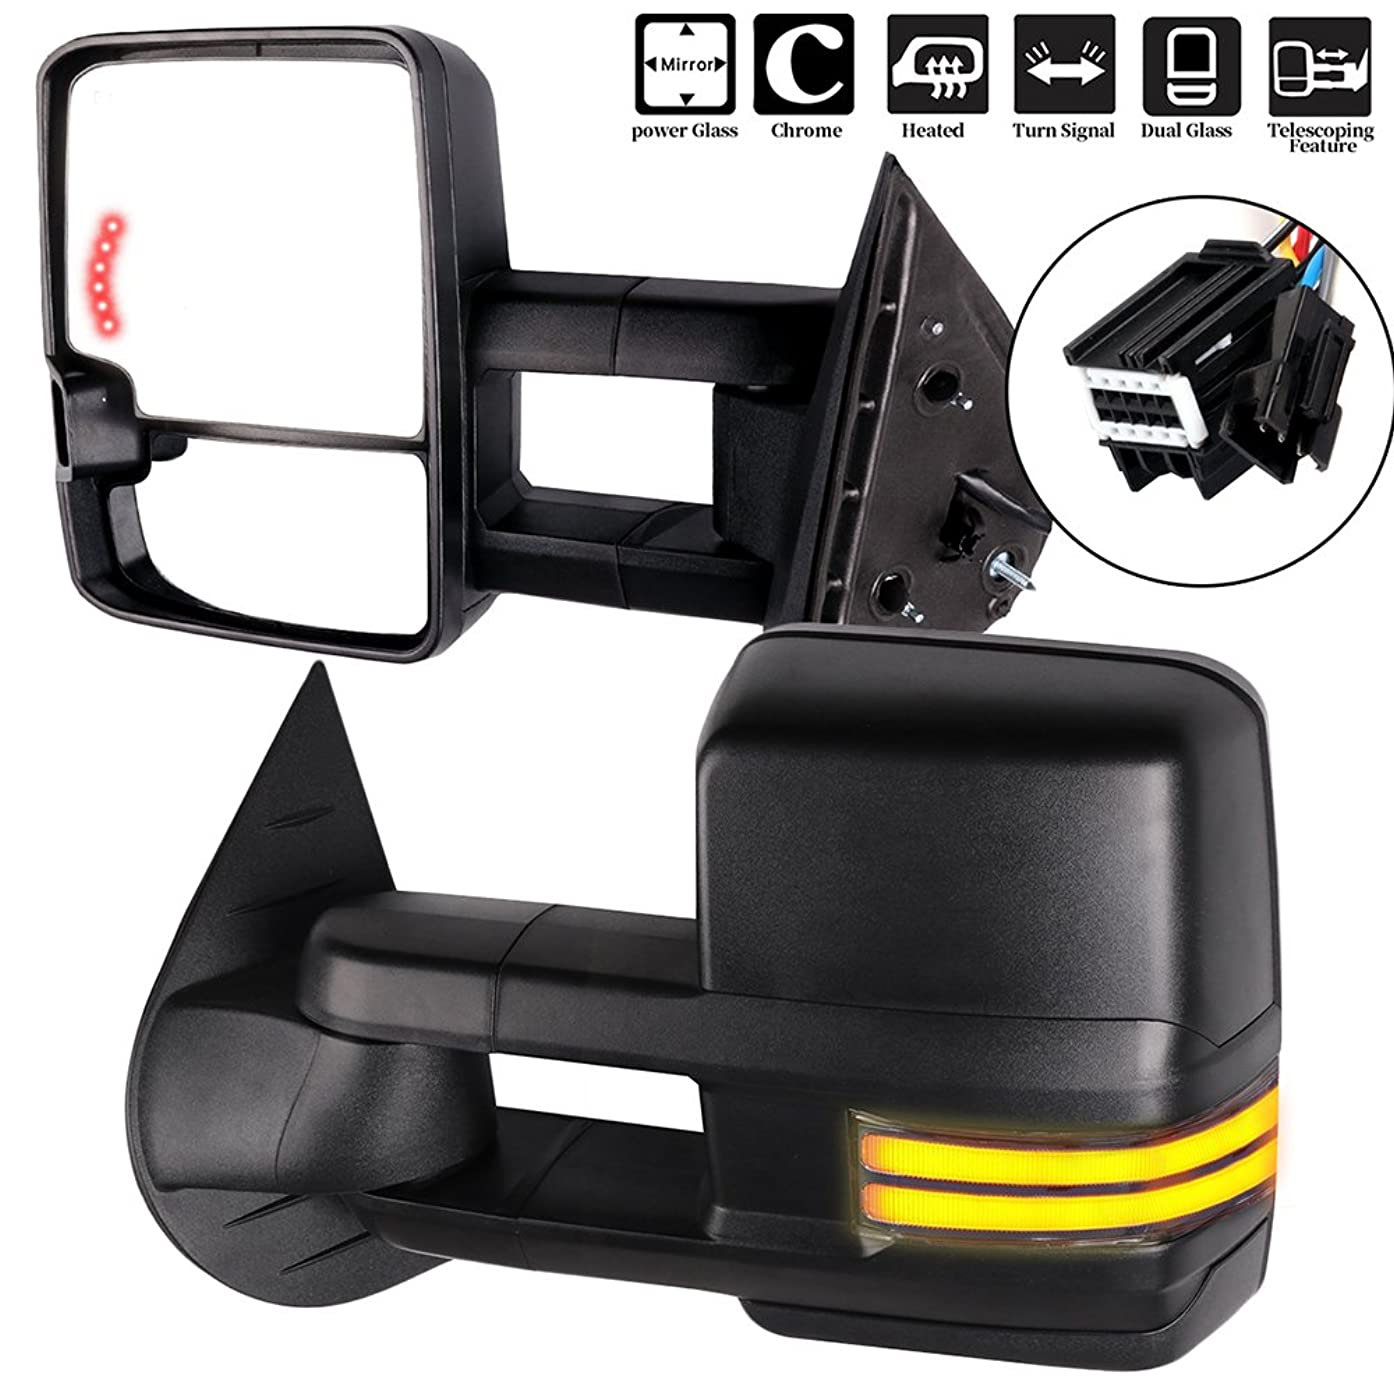 For Chevy GMC Towing Mirrors with Running Lights Black Rear View Mirrors for Silverado Sierra 2008-2013 (07 New Body Style) with Reverse and Clearance Lights Arrow Turn Signal Power Control and Heated